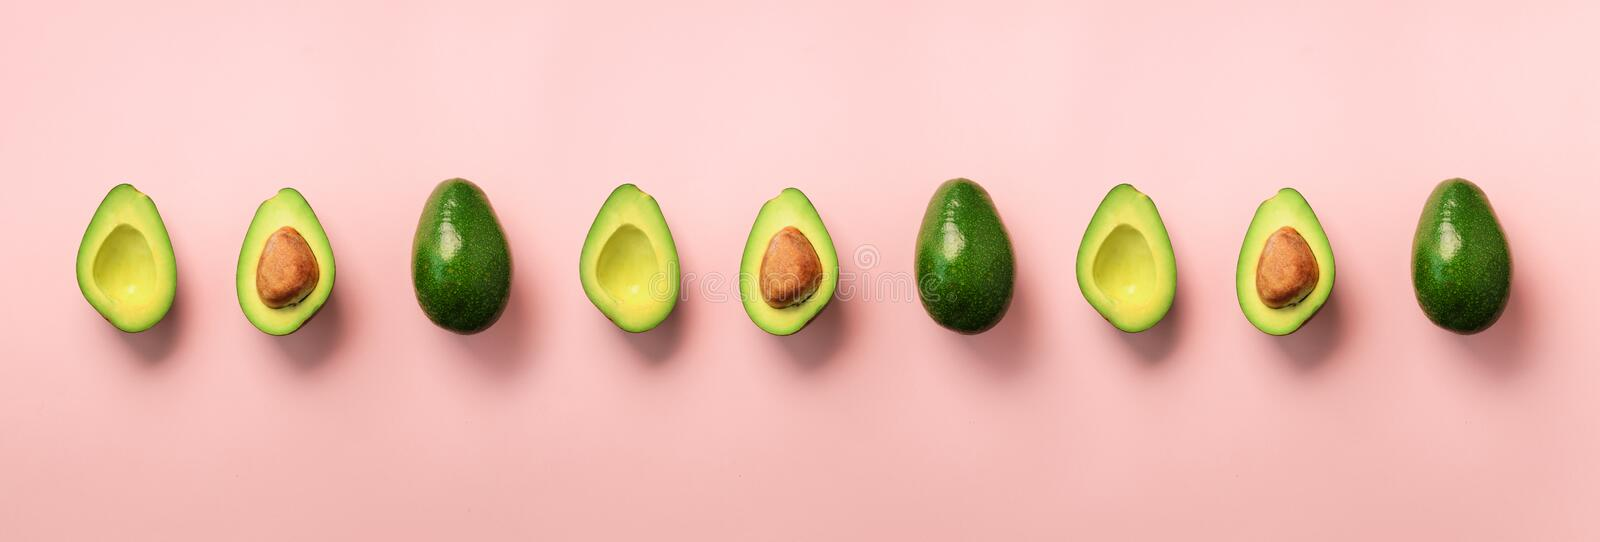 Organic avocado with seed, avocado halves, whole fruits on pink background. Top view. Banner, seamless pattern. Pop art design, cr royalty free stock images